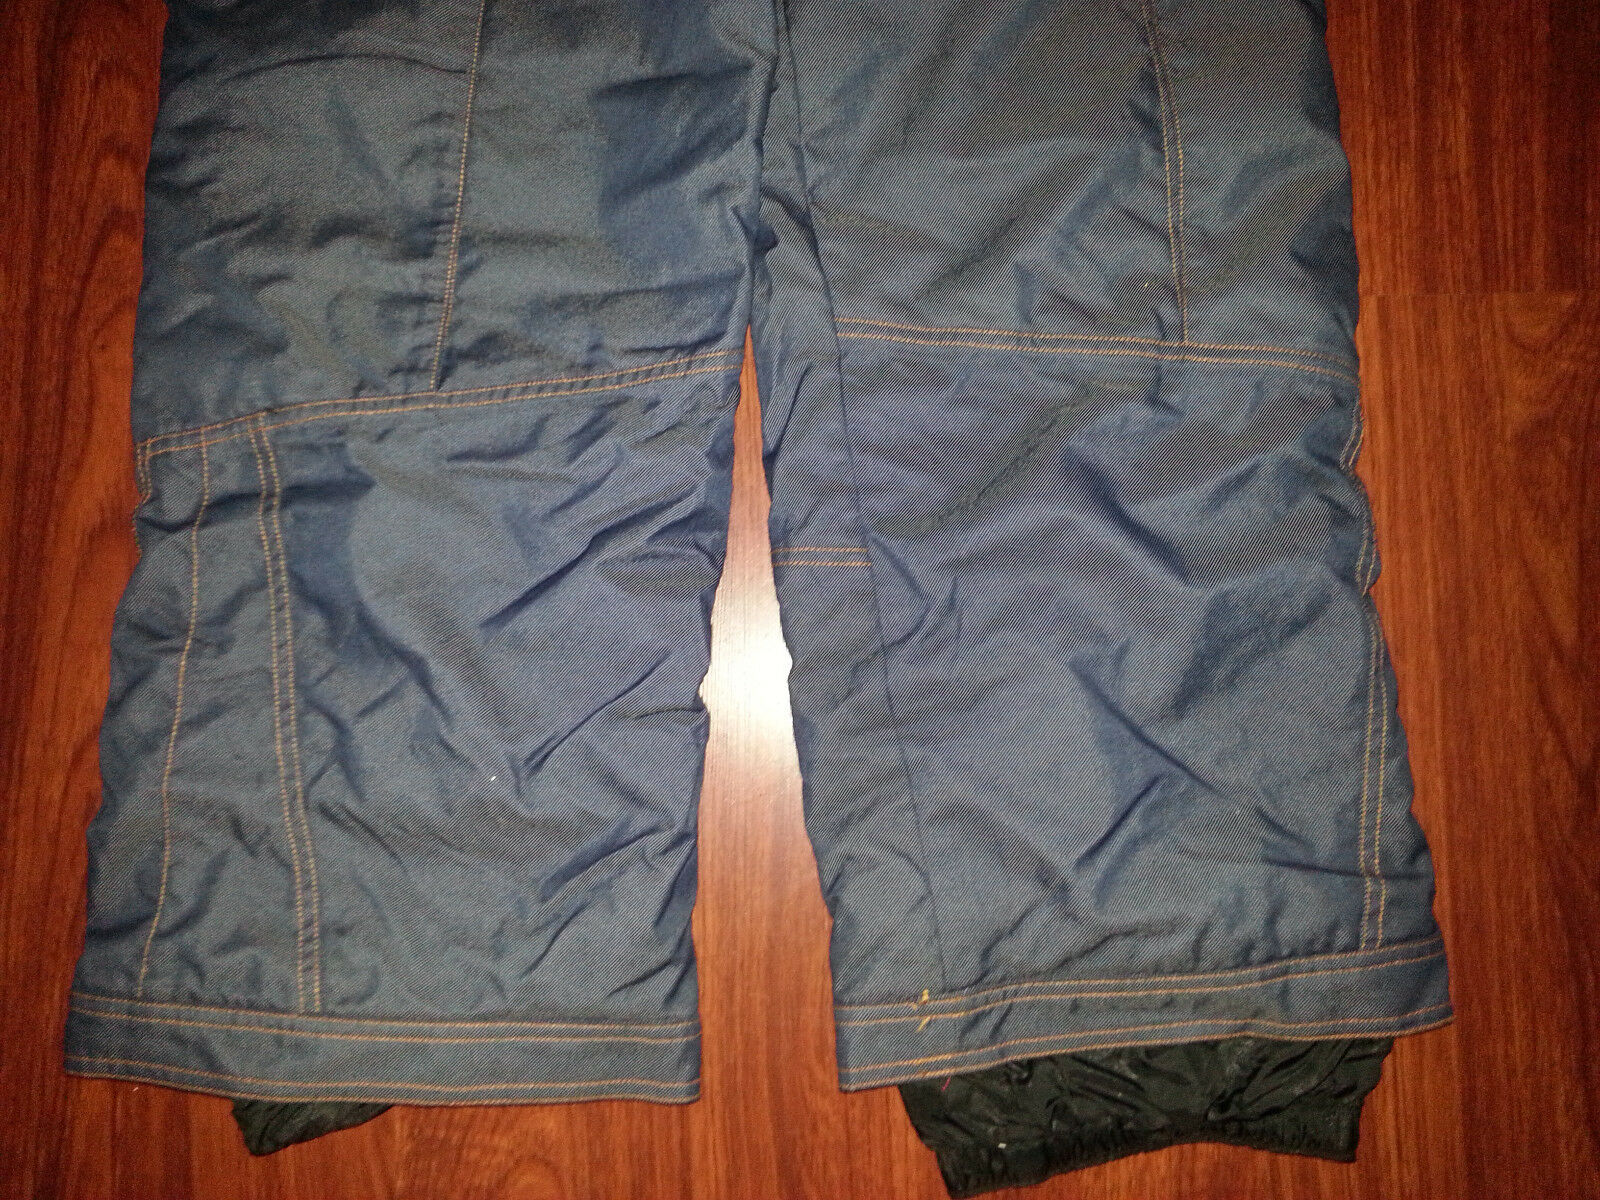 OBERMEYER ALT3 Junior Girl Donna Look blu Denim Jean Look Donna Ski Snowboard Pants Sz 18 70dcc0